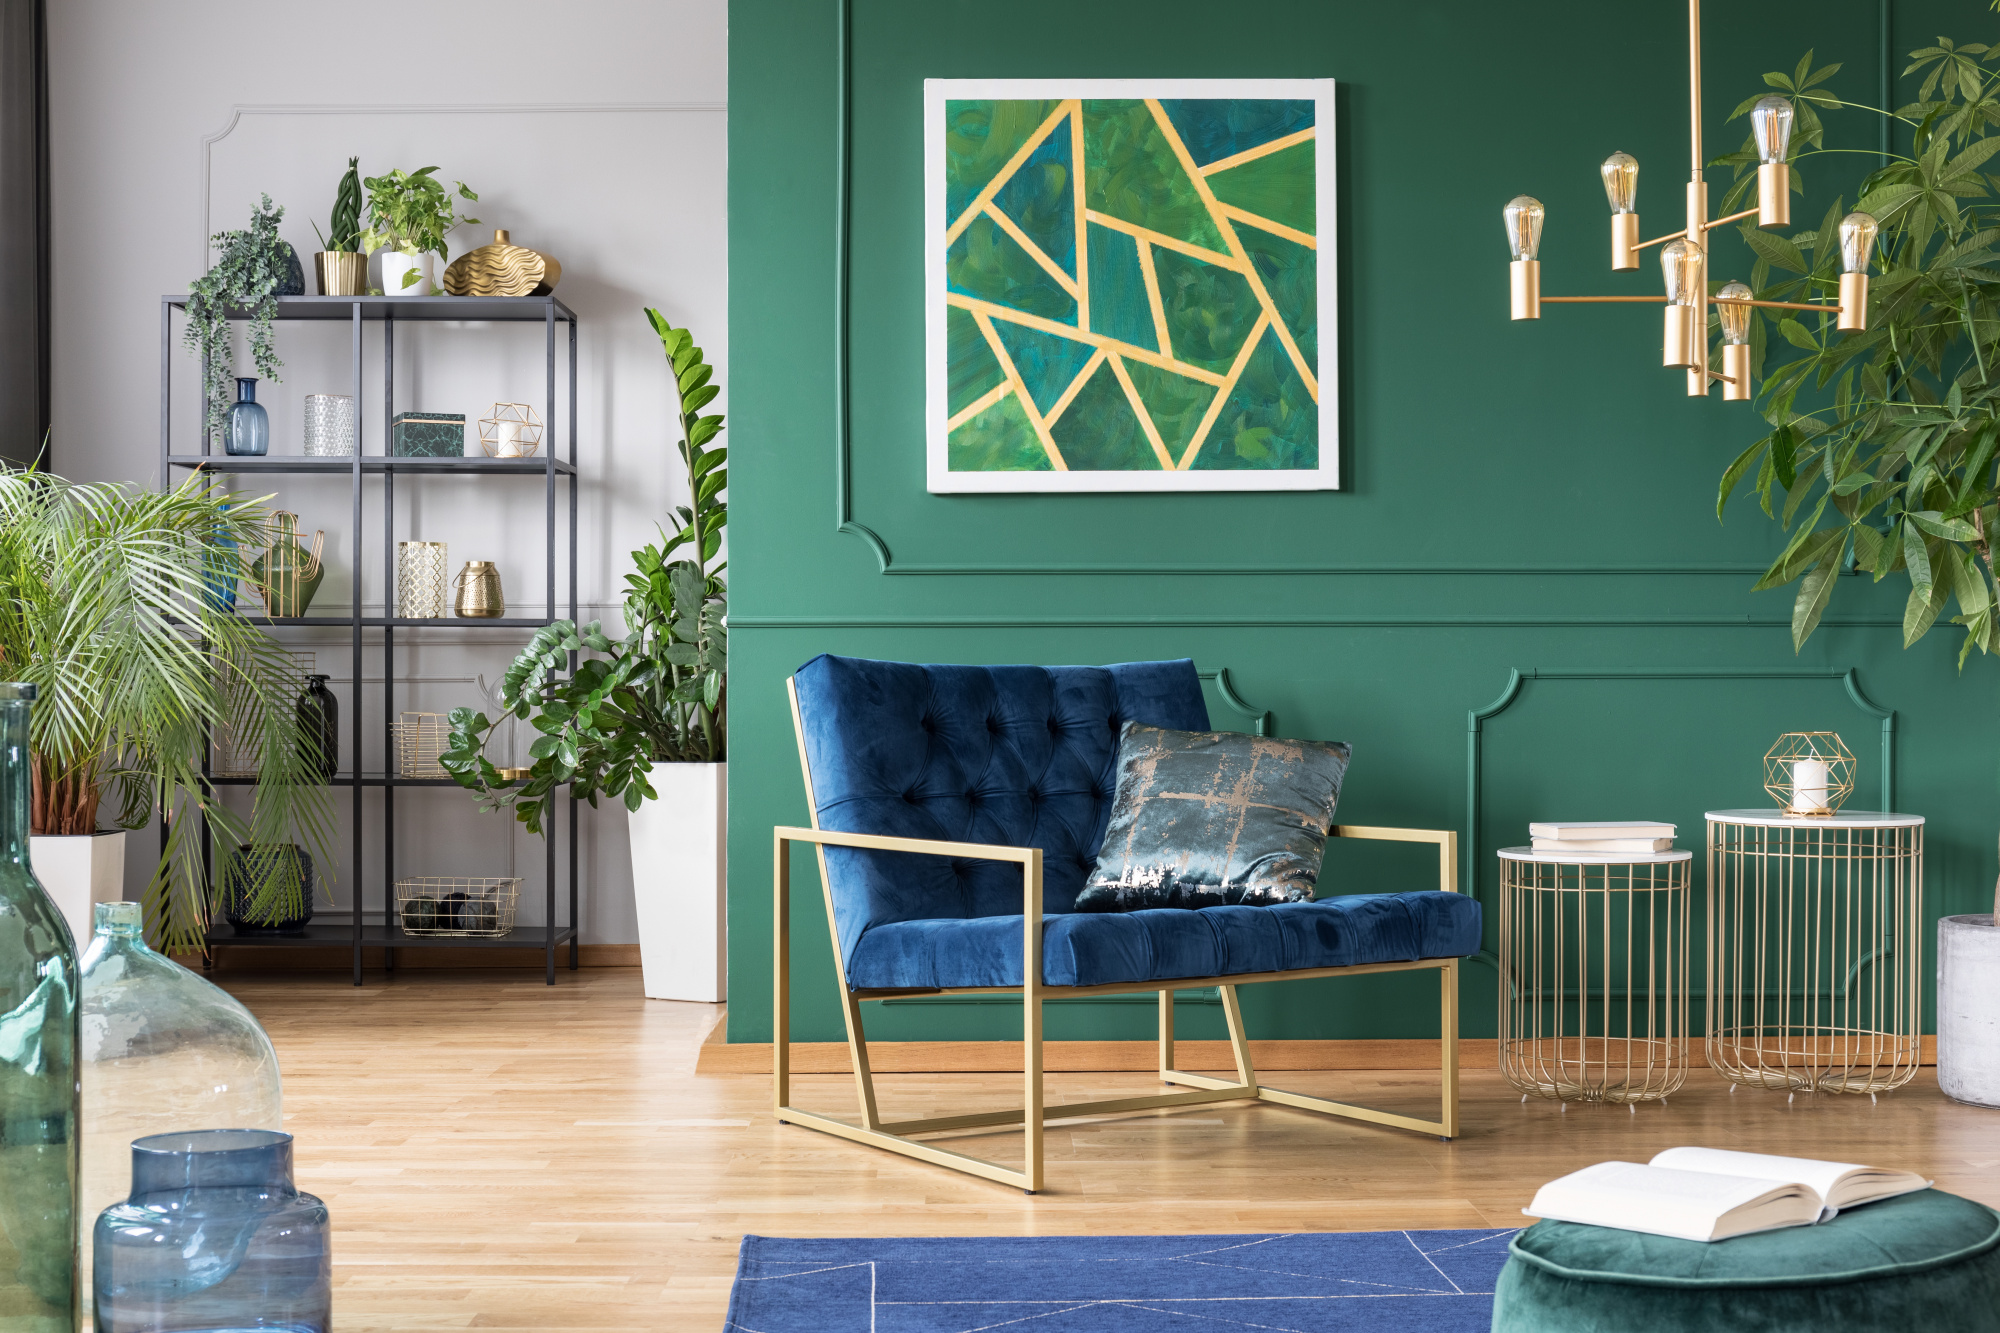 How To Mix Prints In Your Home Like A Pro, mixed prints and patterns for home decor, green and blue home decor